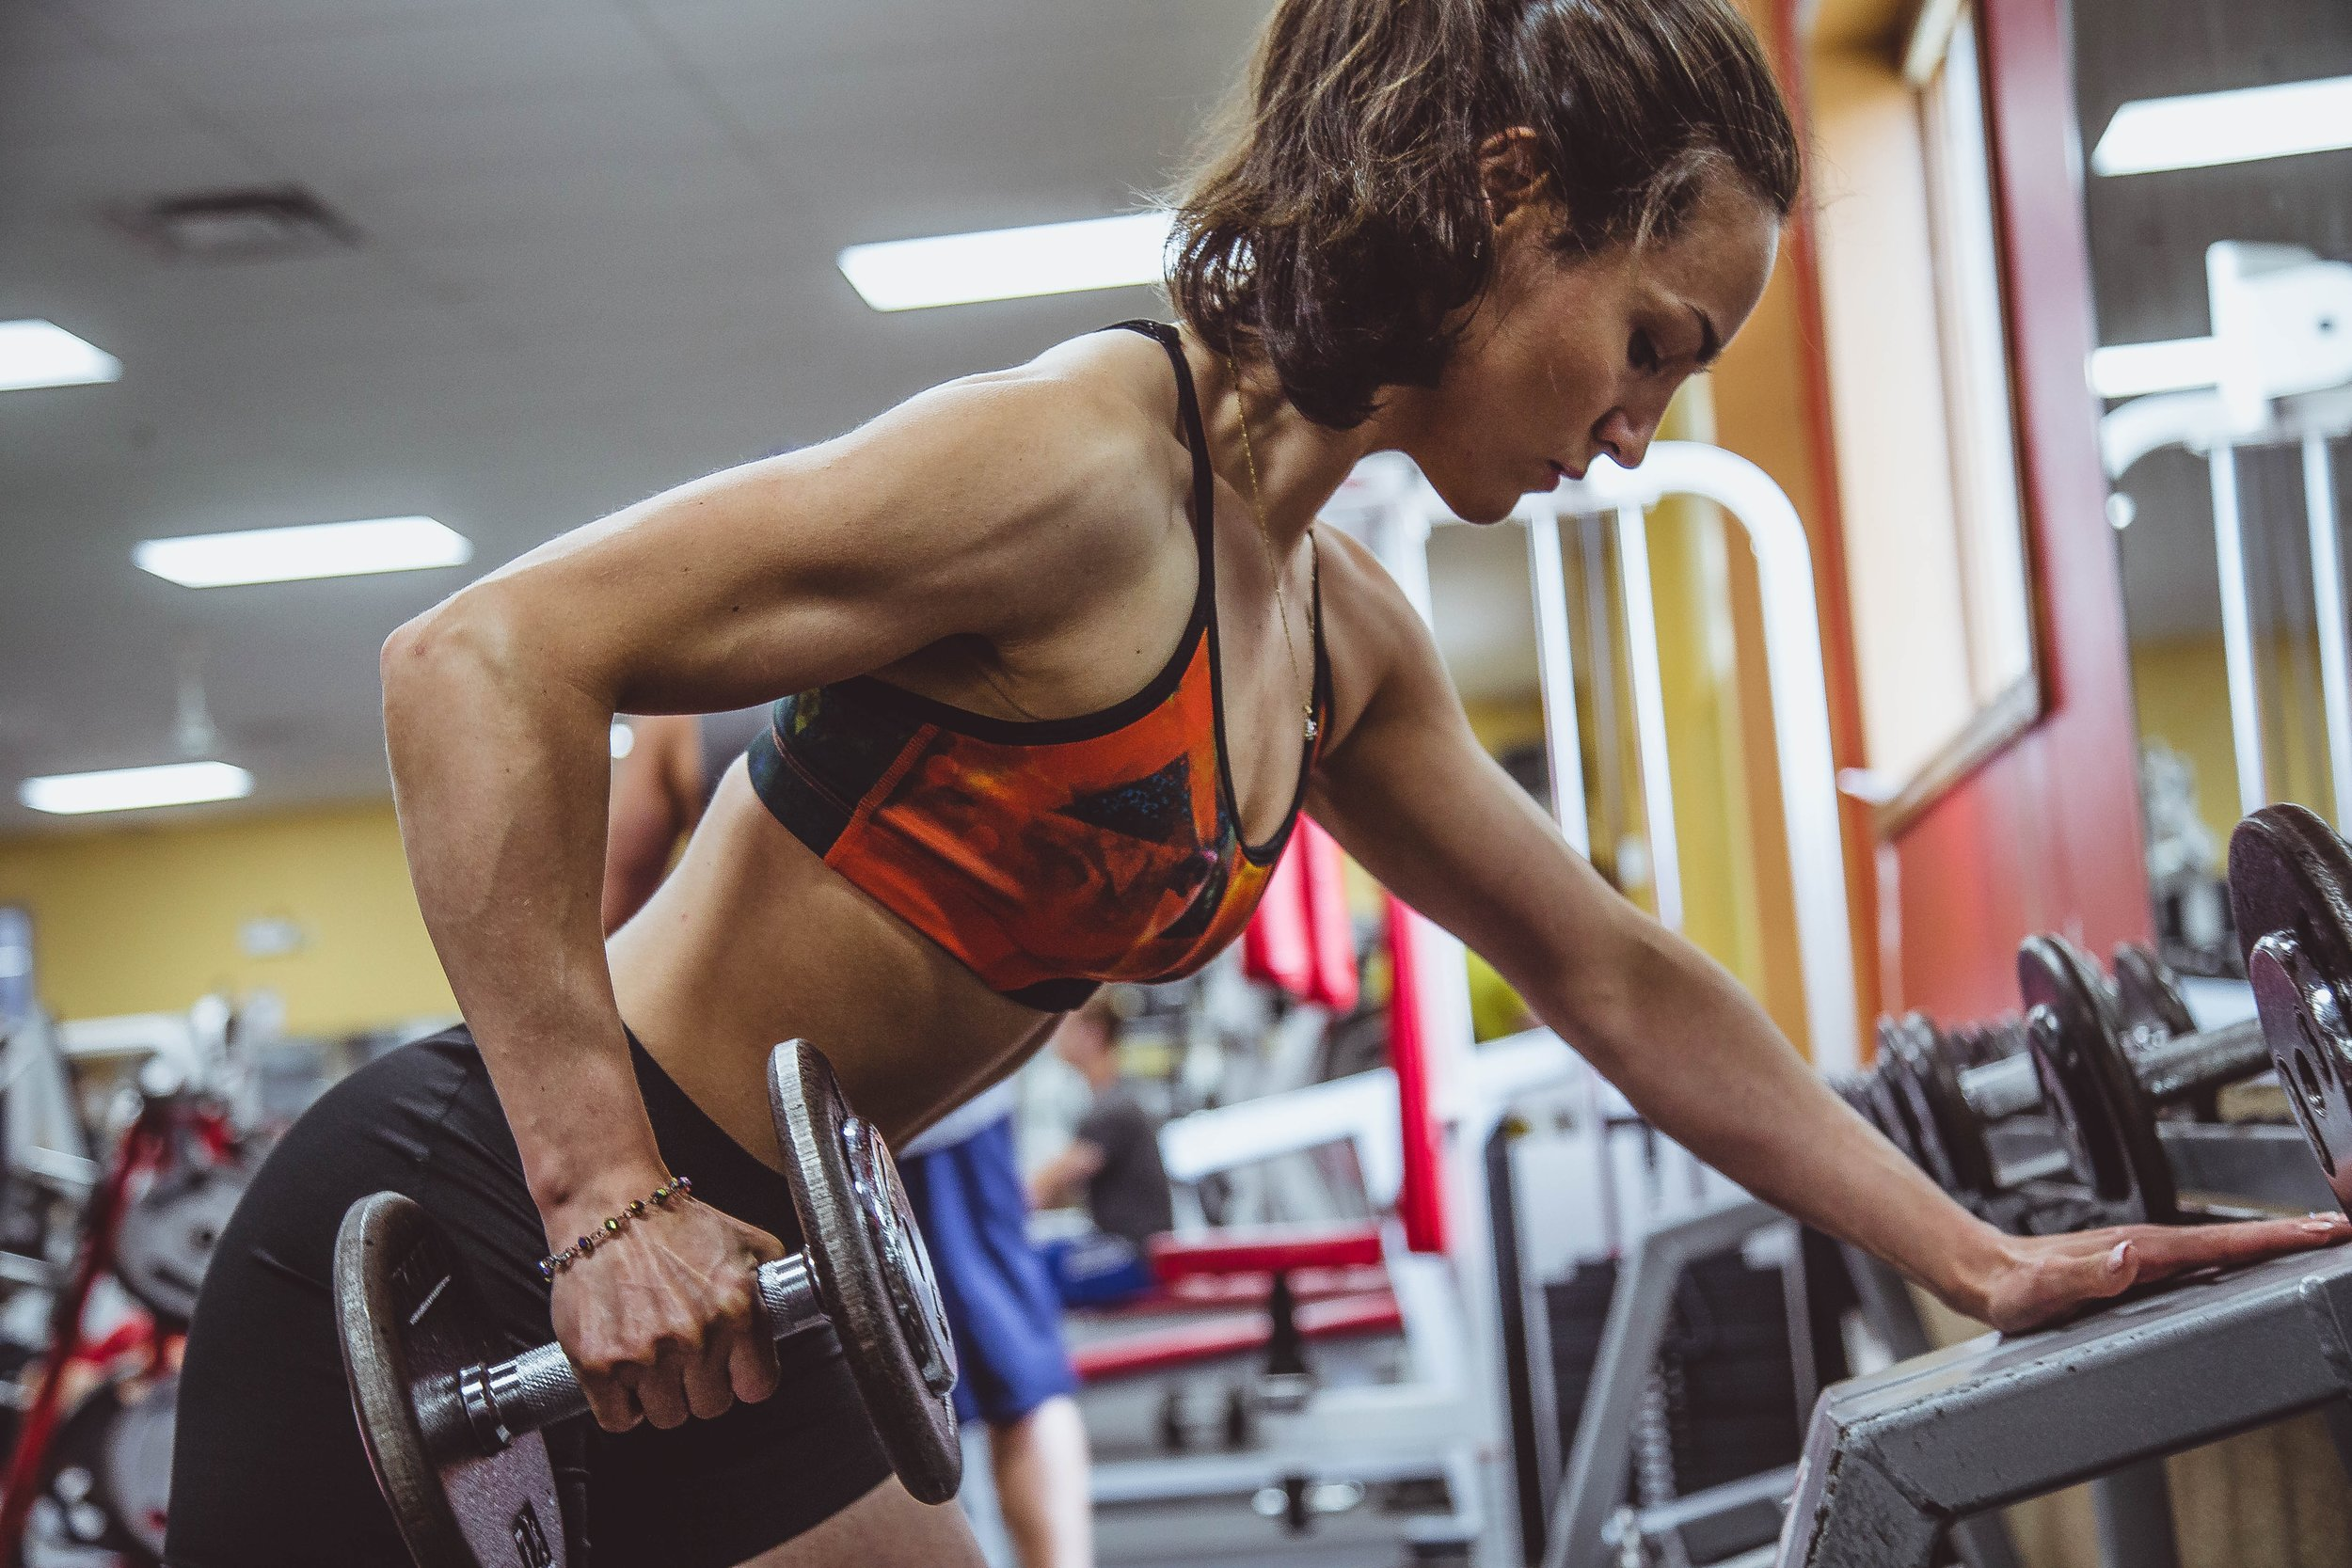 female with supplements doing dumbell workout